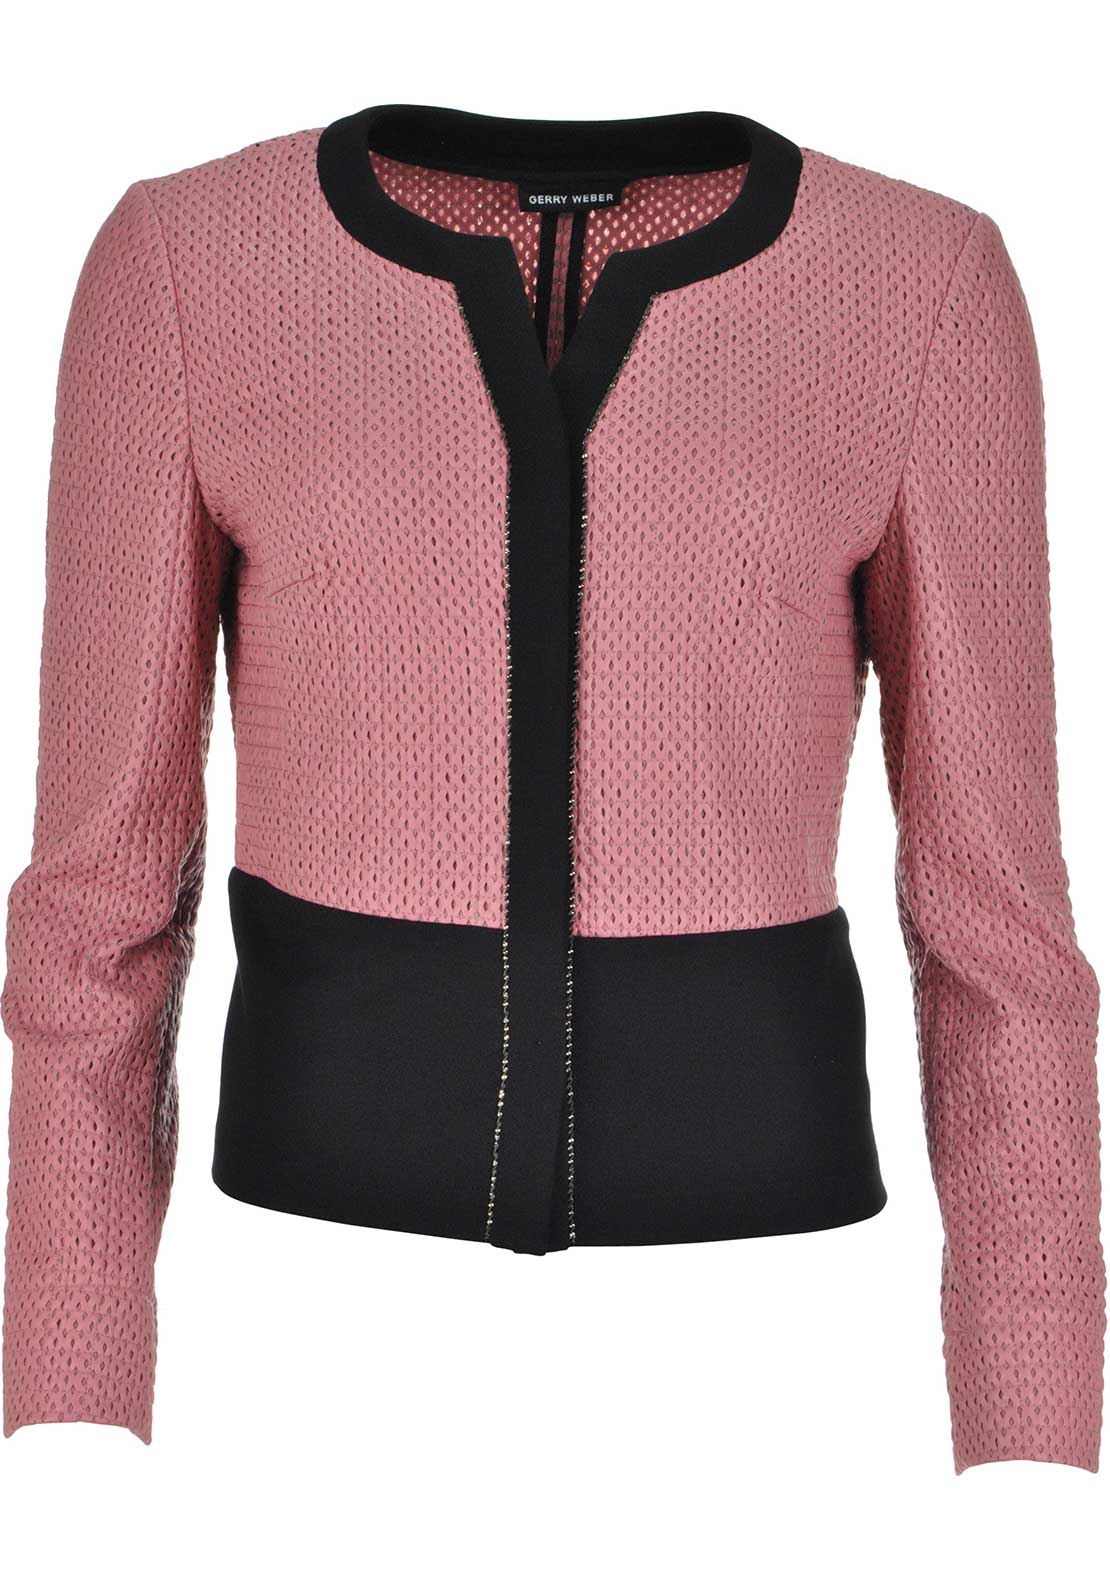 Gerry Weber Laser Cut Out Cropped Leather Look Jacket, Salmon Pink